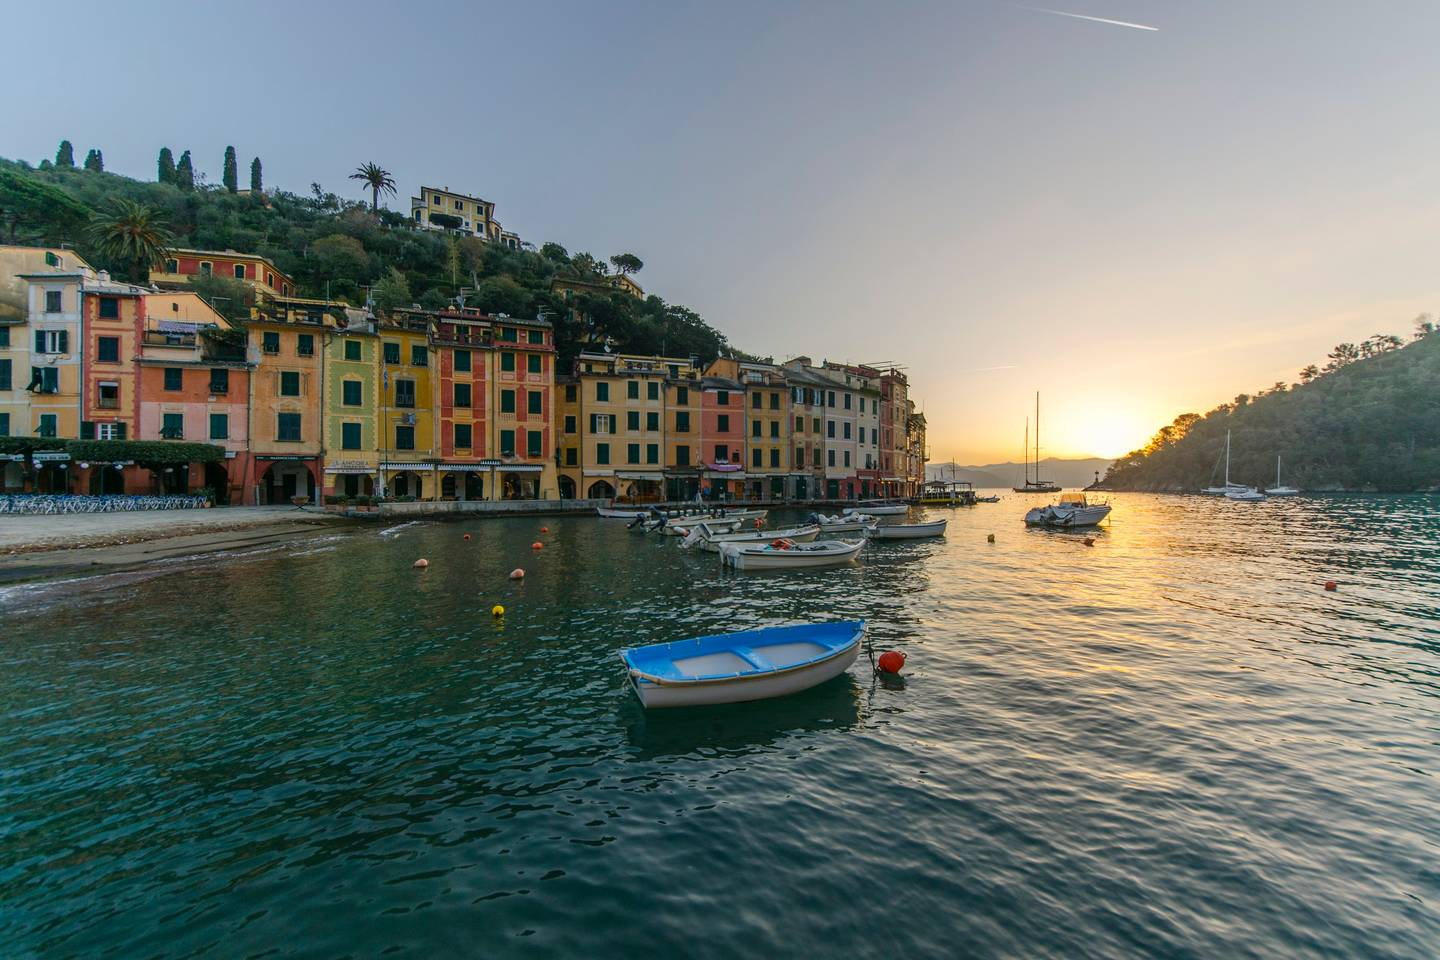 Apartment Hintown  La Finestra sulla Piazzetta a Portofino photo 18309750